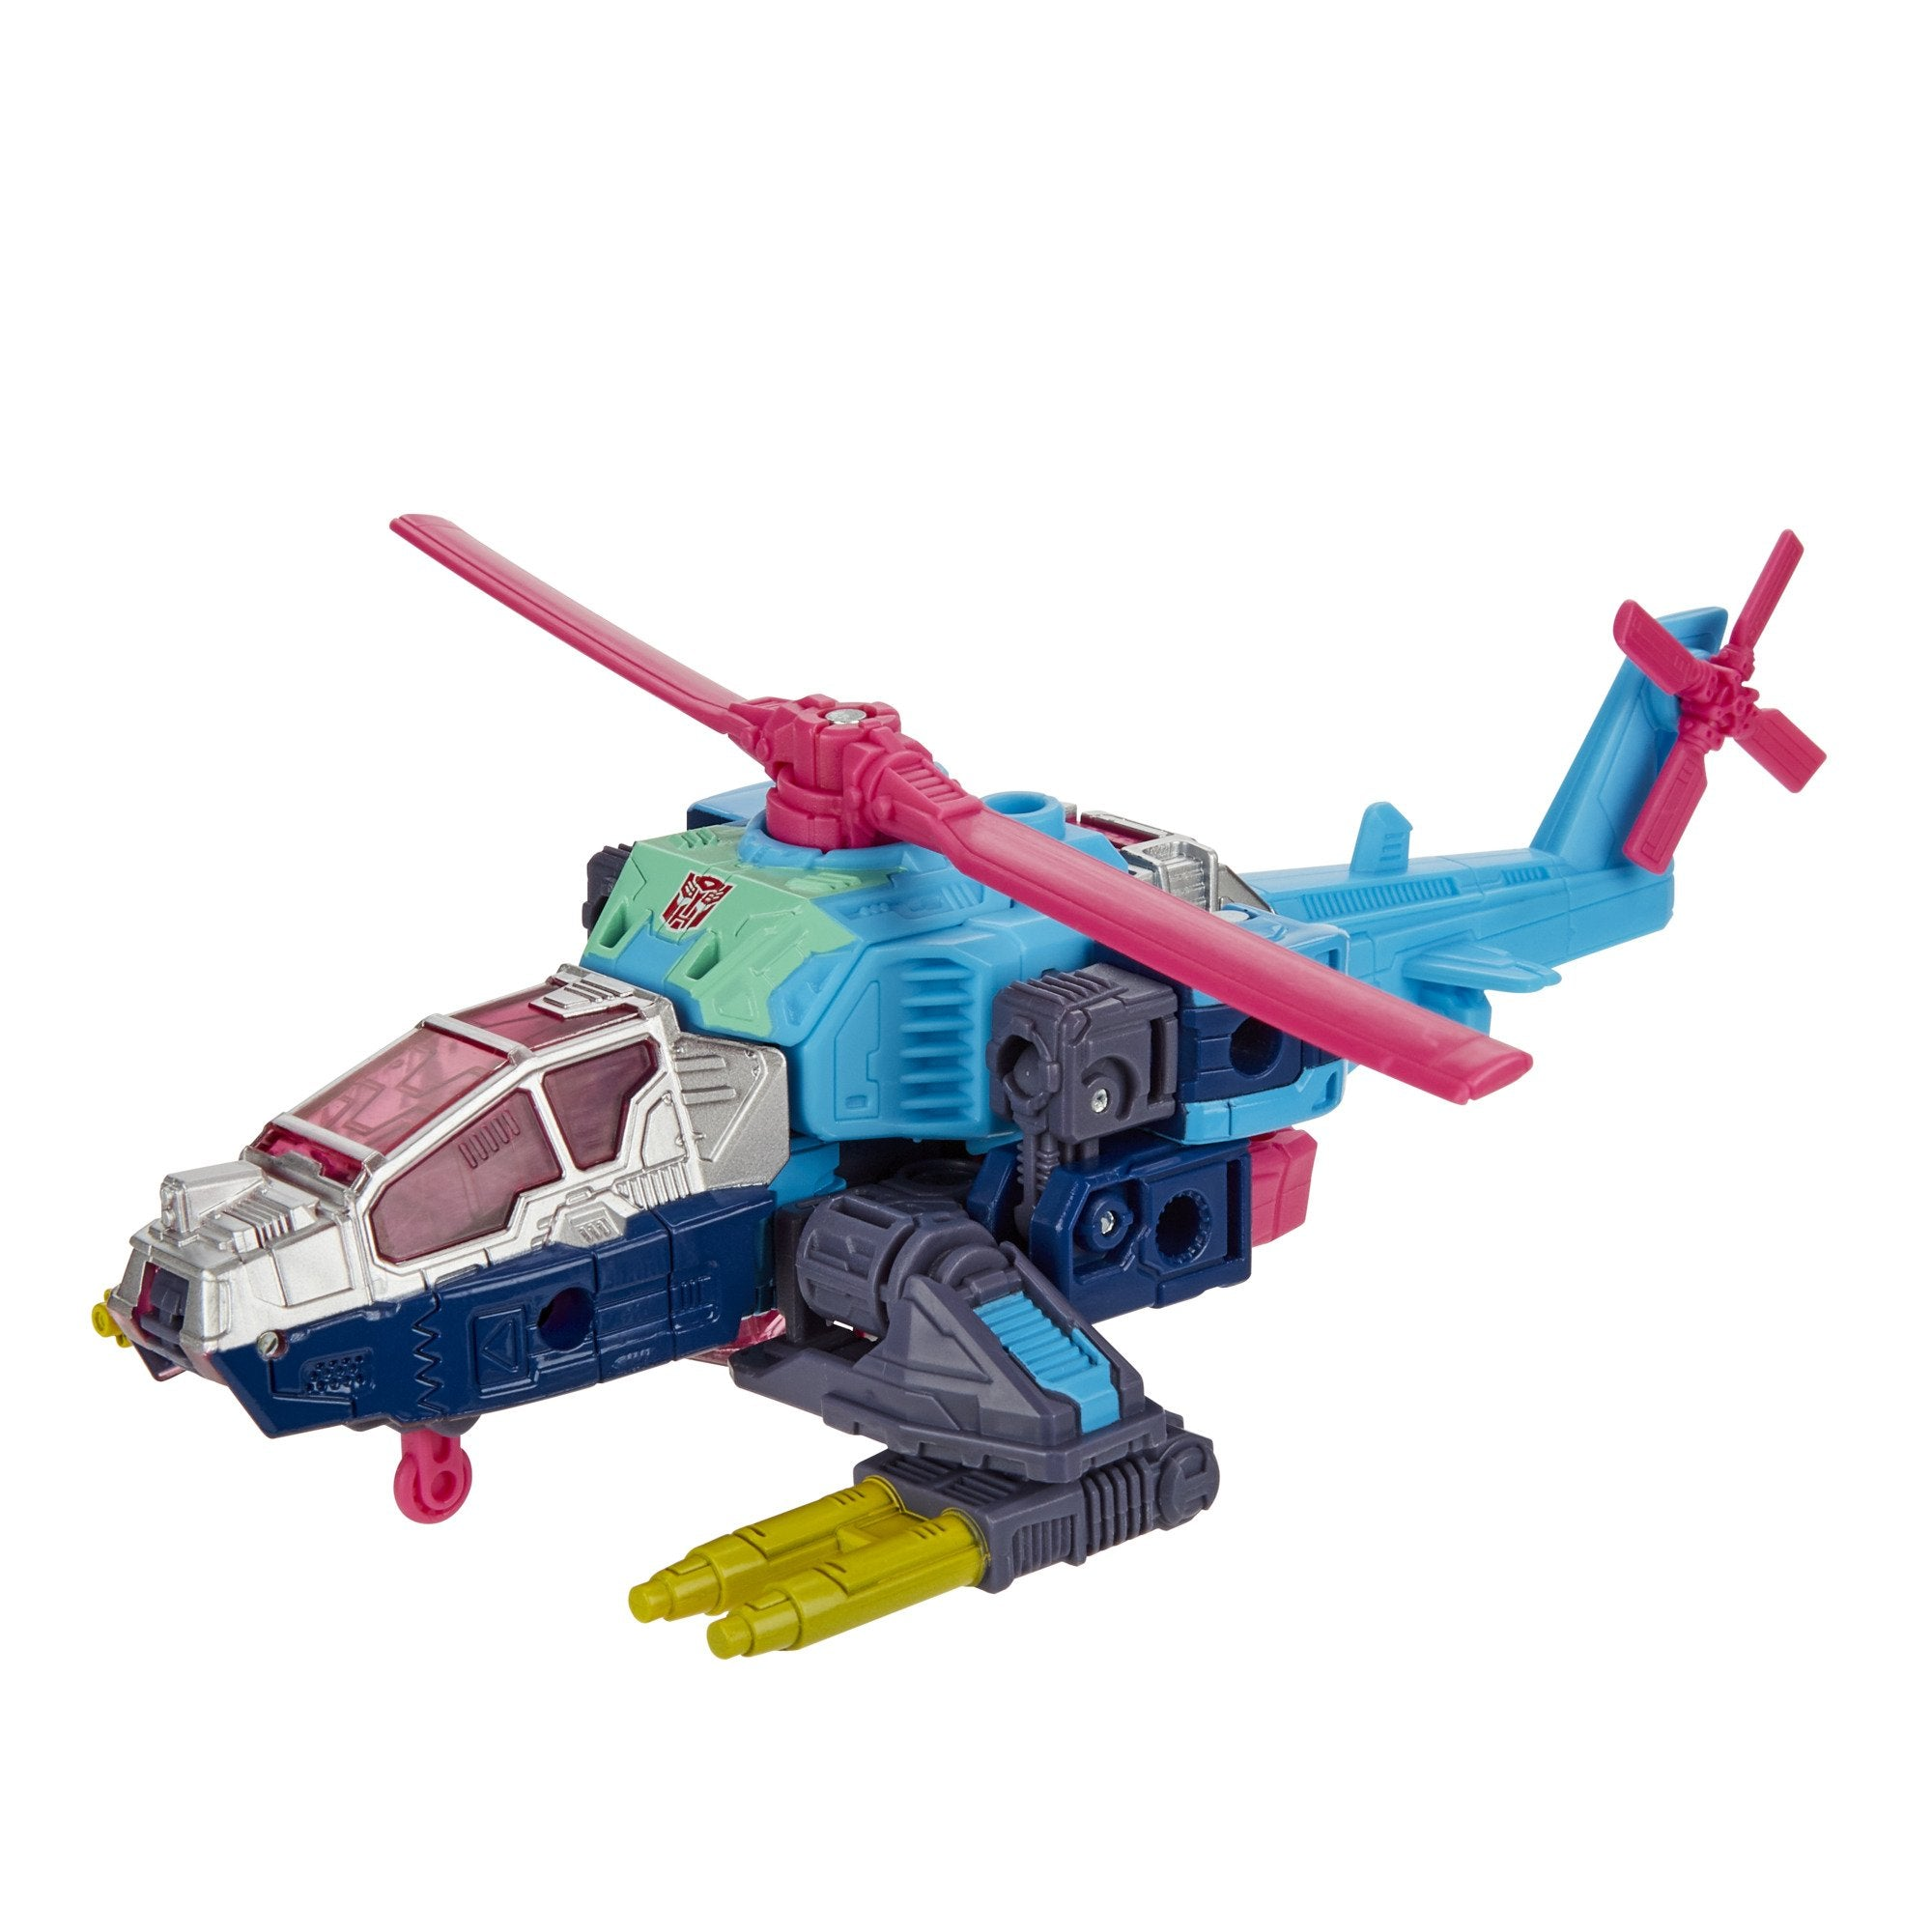 Hasbro - Transformers Generations Selects - Deluxe Rotorstorm